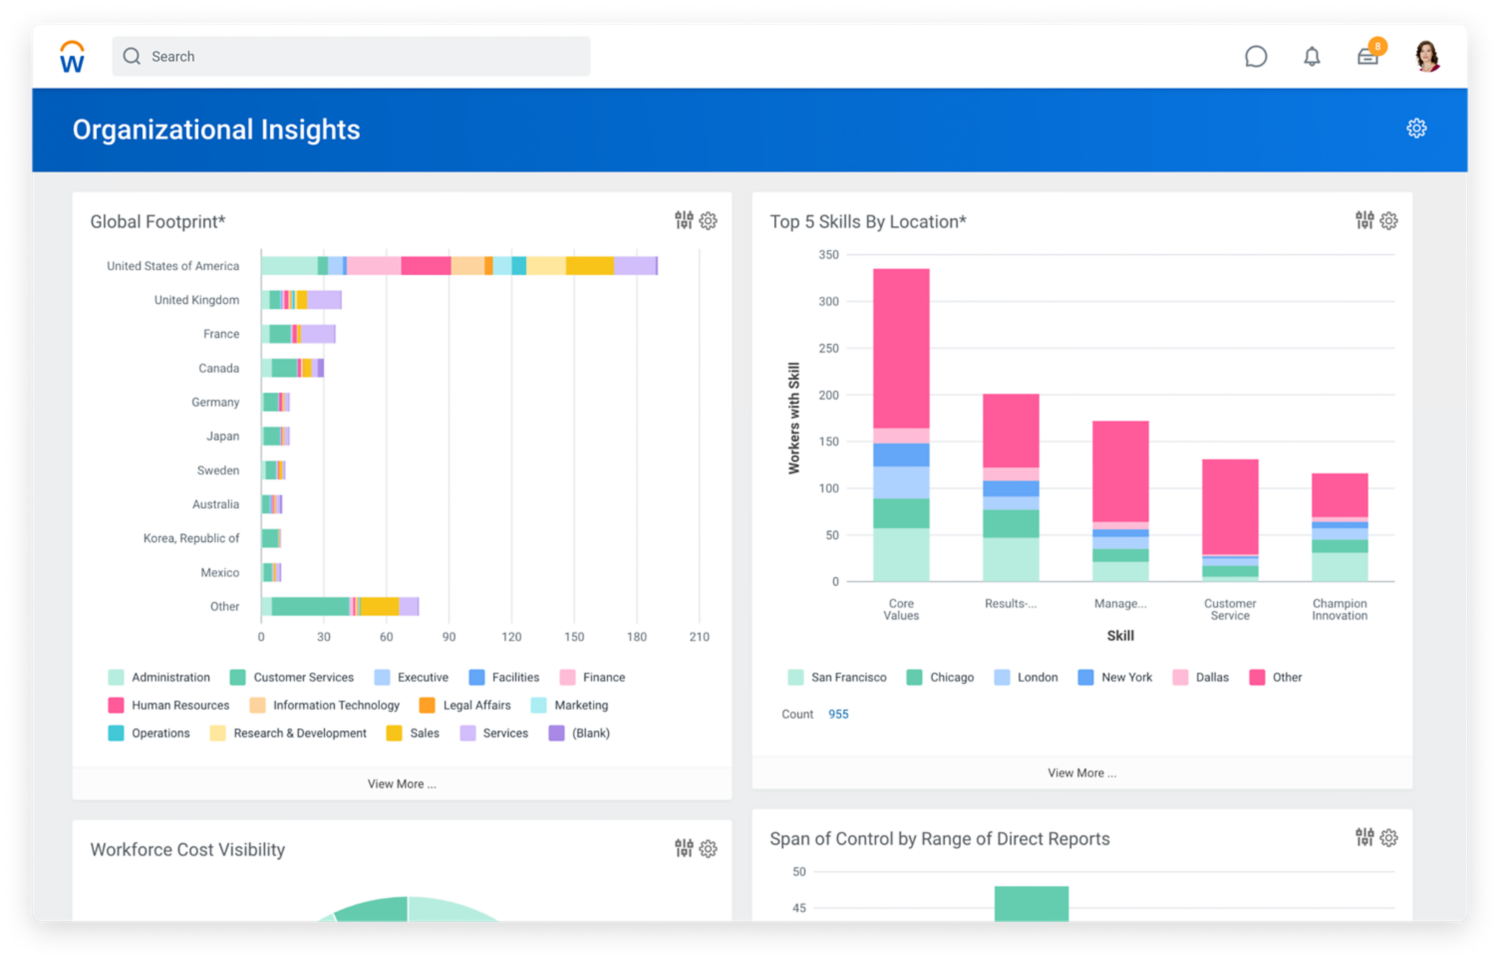 Organizational insights dashboard showing bar graphs for global footprint and top five skills by location. 2020R1